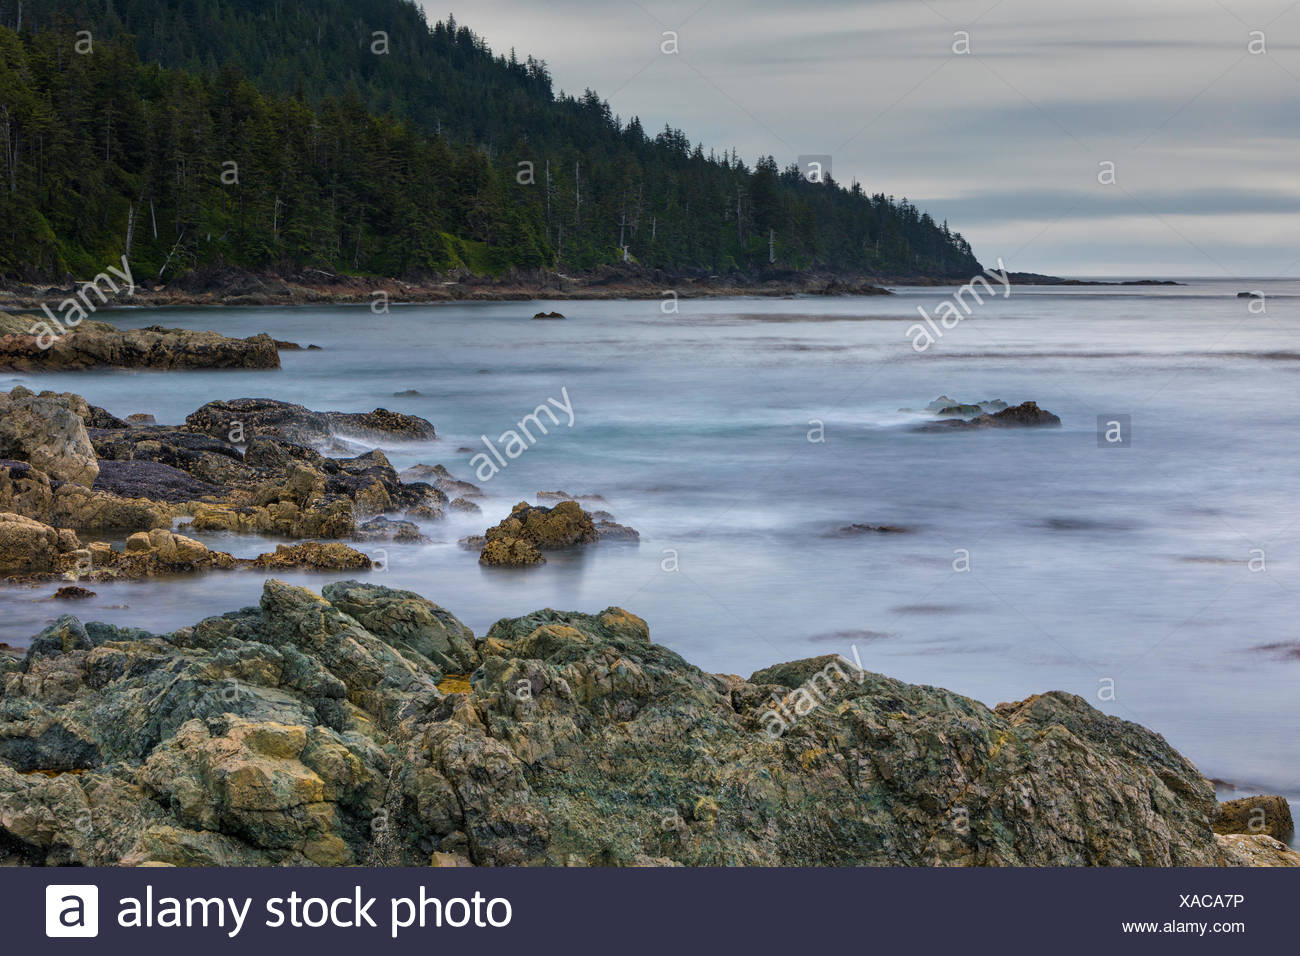 Peaceful cloudy day at Cape Palmerston, Northern Vancouver Island, British Columbi, Canada - Stock Image